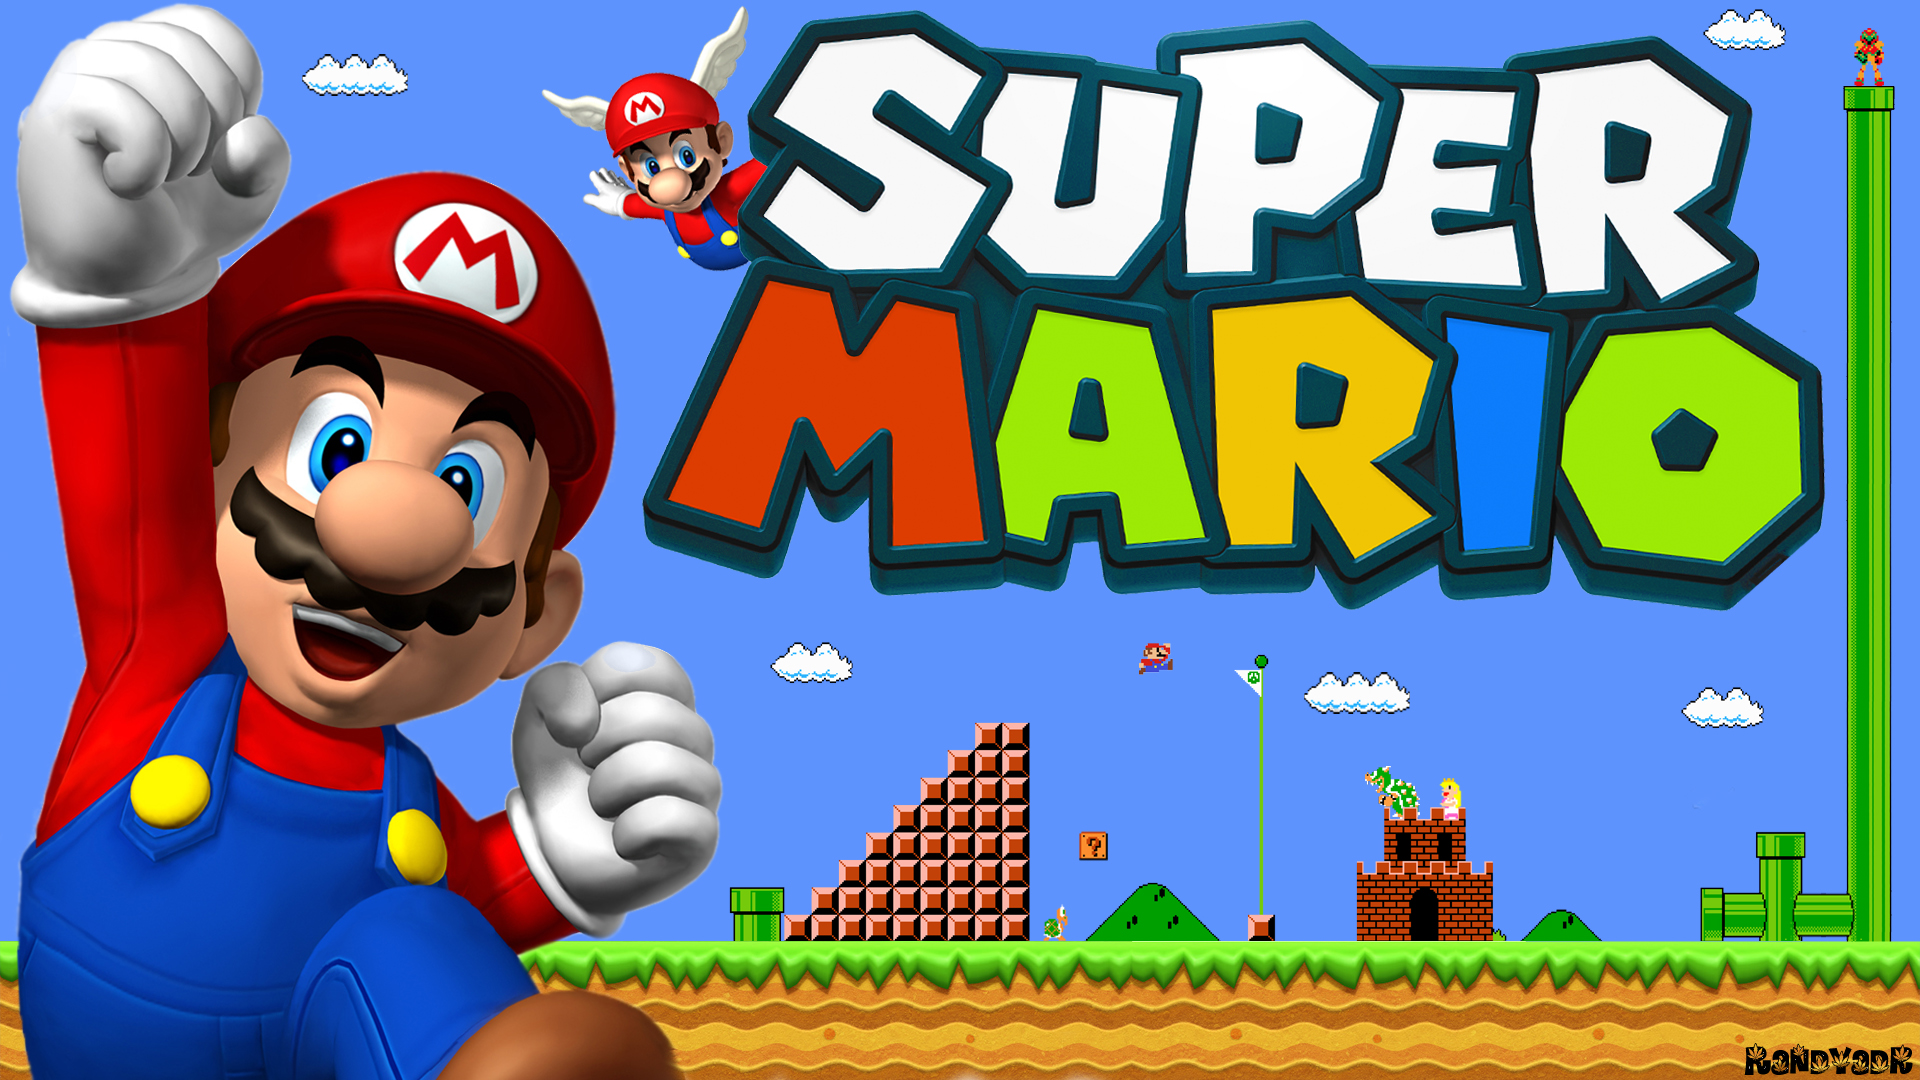 The most popular video games in history